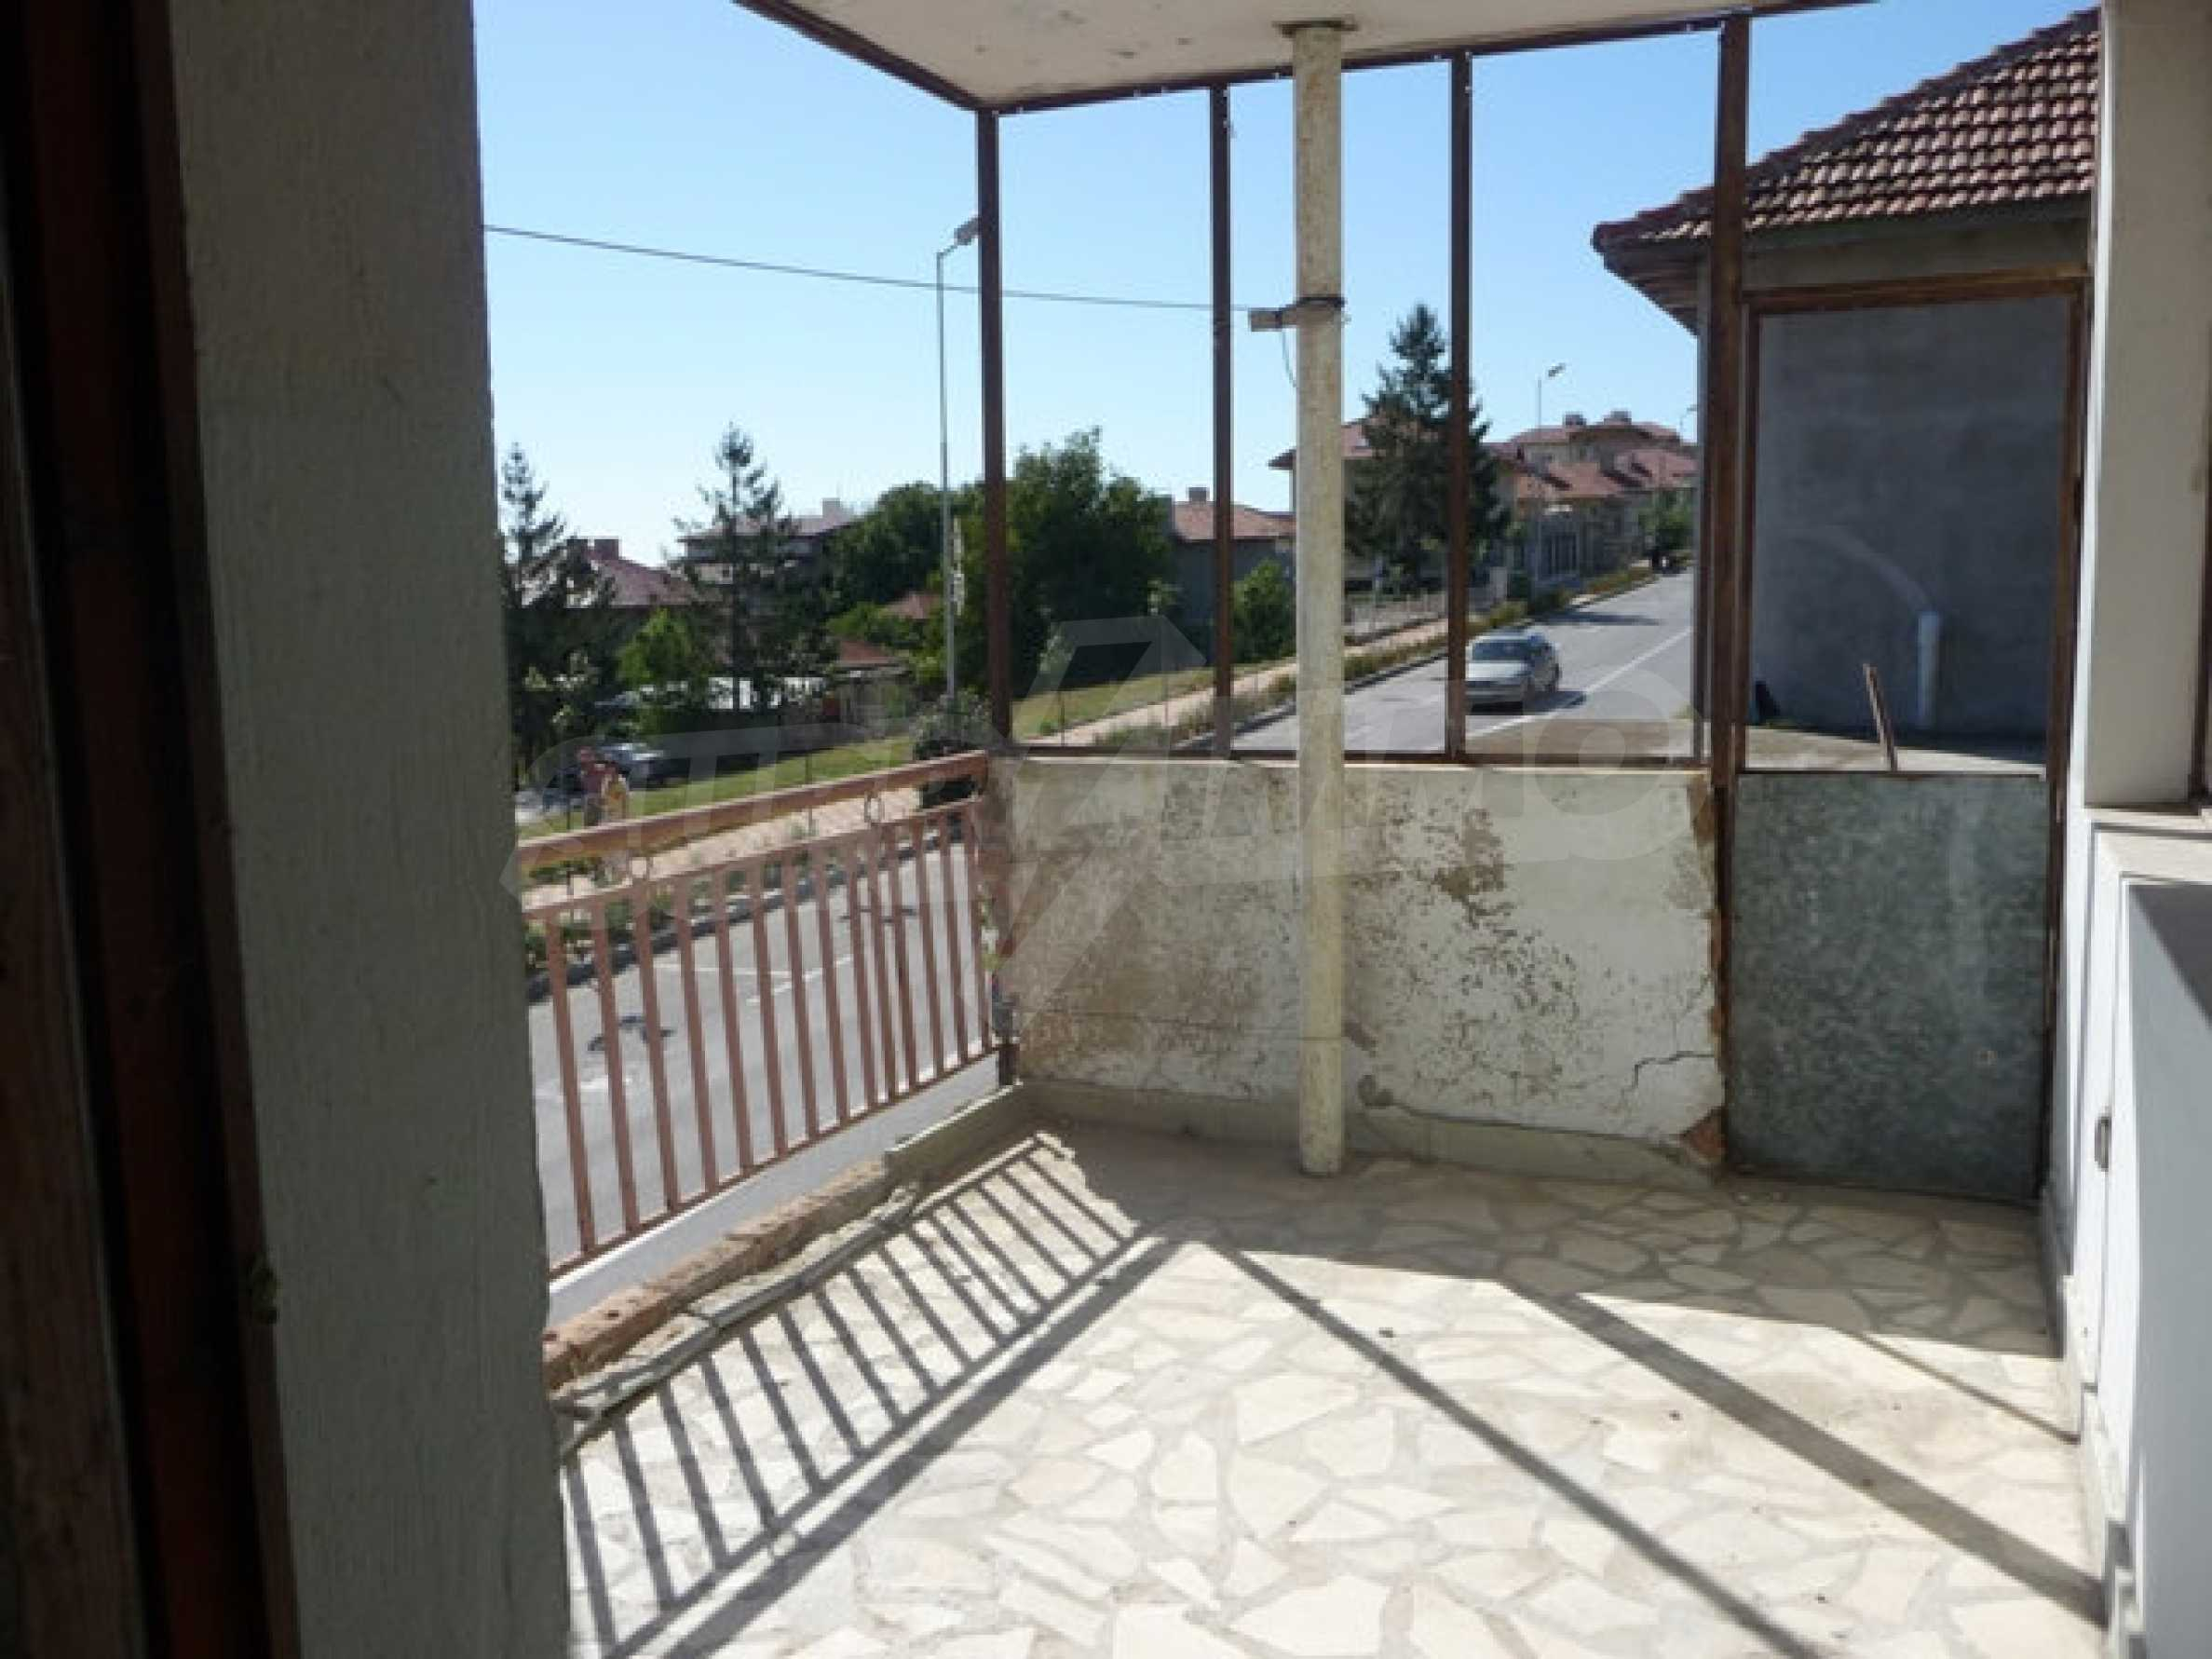 House with shop in Byala (Varna) 12